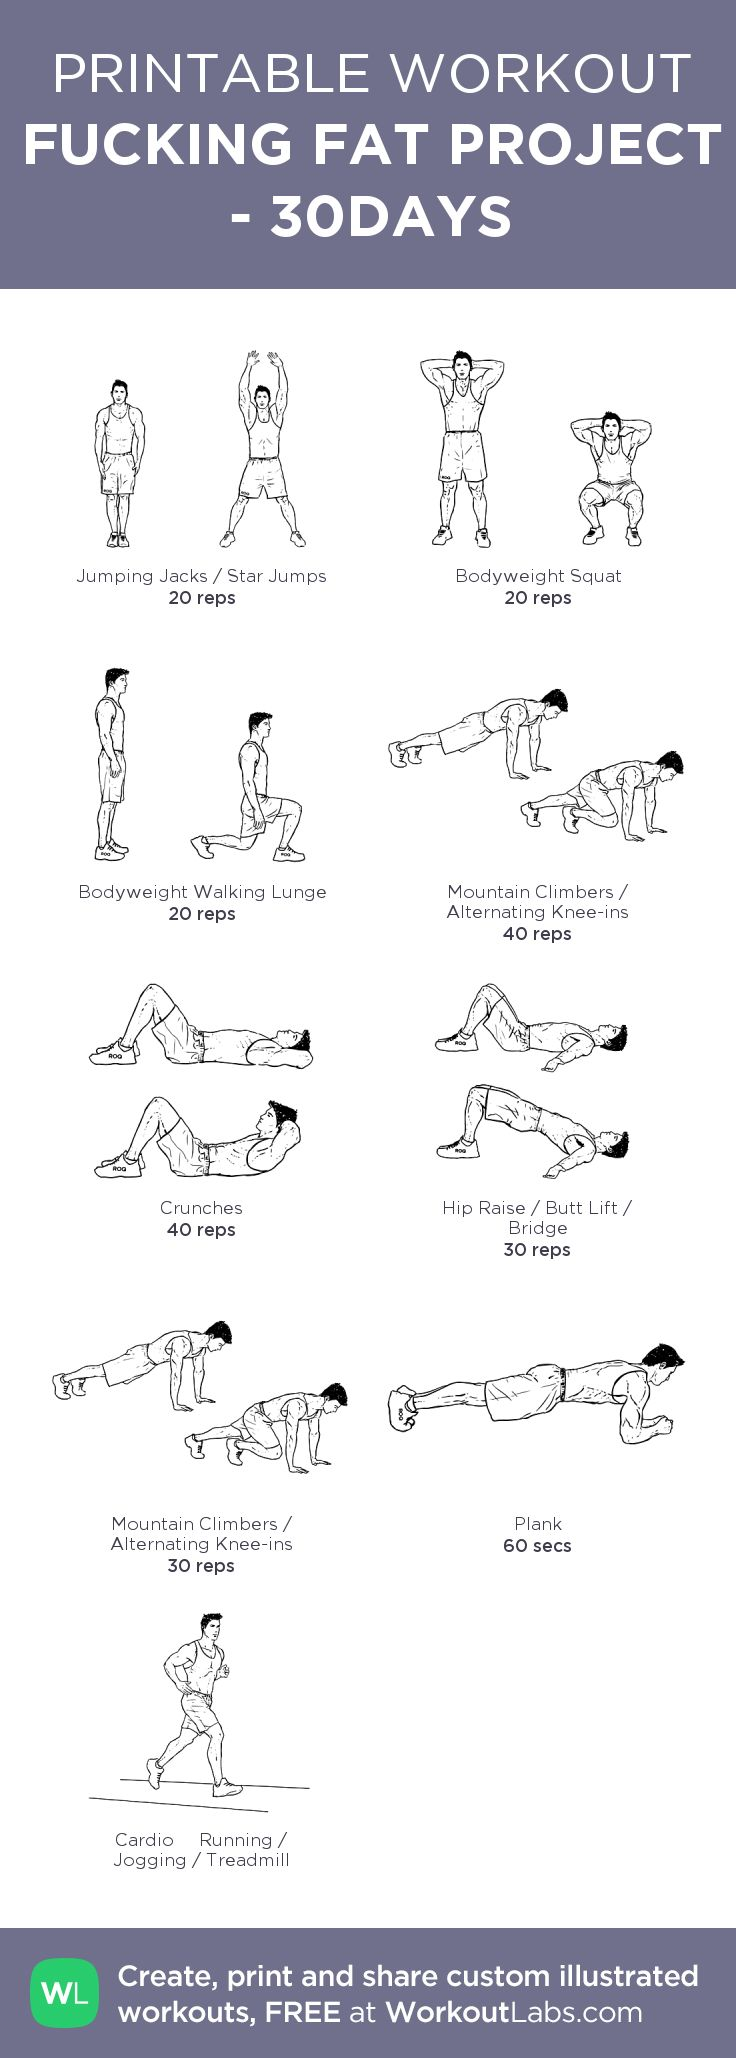 FUCKING FAT PROJECT - 30DAYS: my visual workout created at WorkoutLabs.com • Click through to customize and download as a FREE PDF! #customworkout